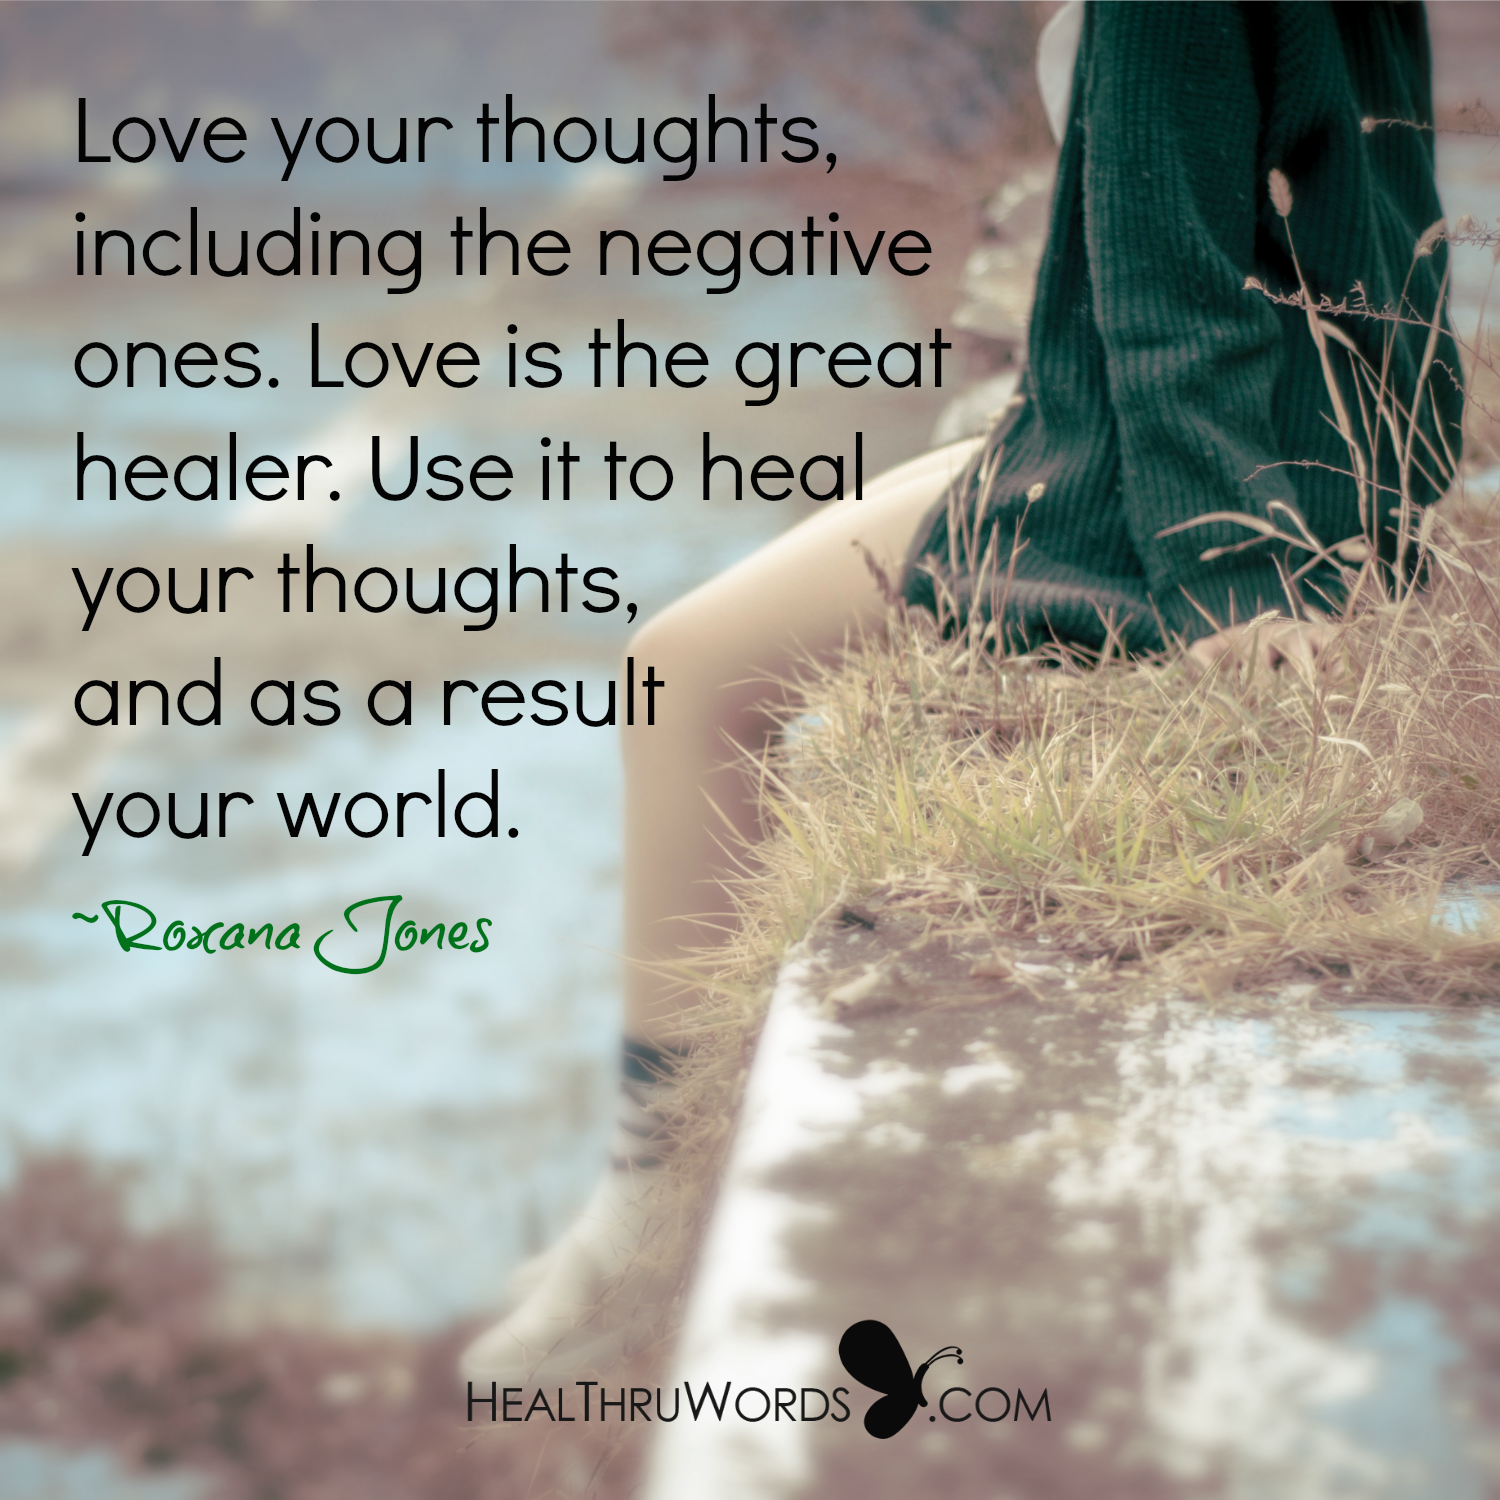 Inspirational Image: The Great Healer